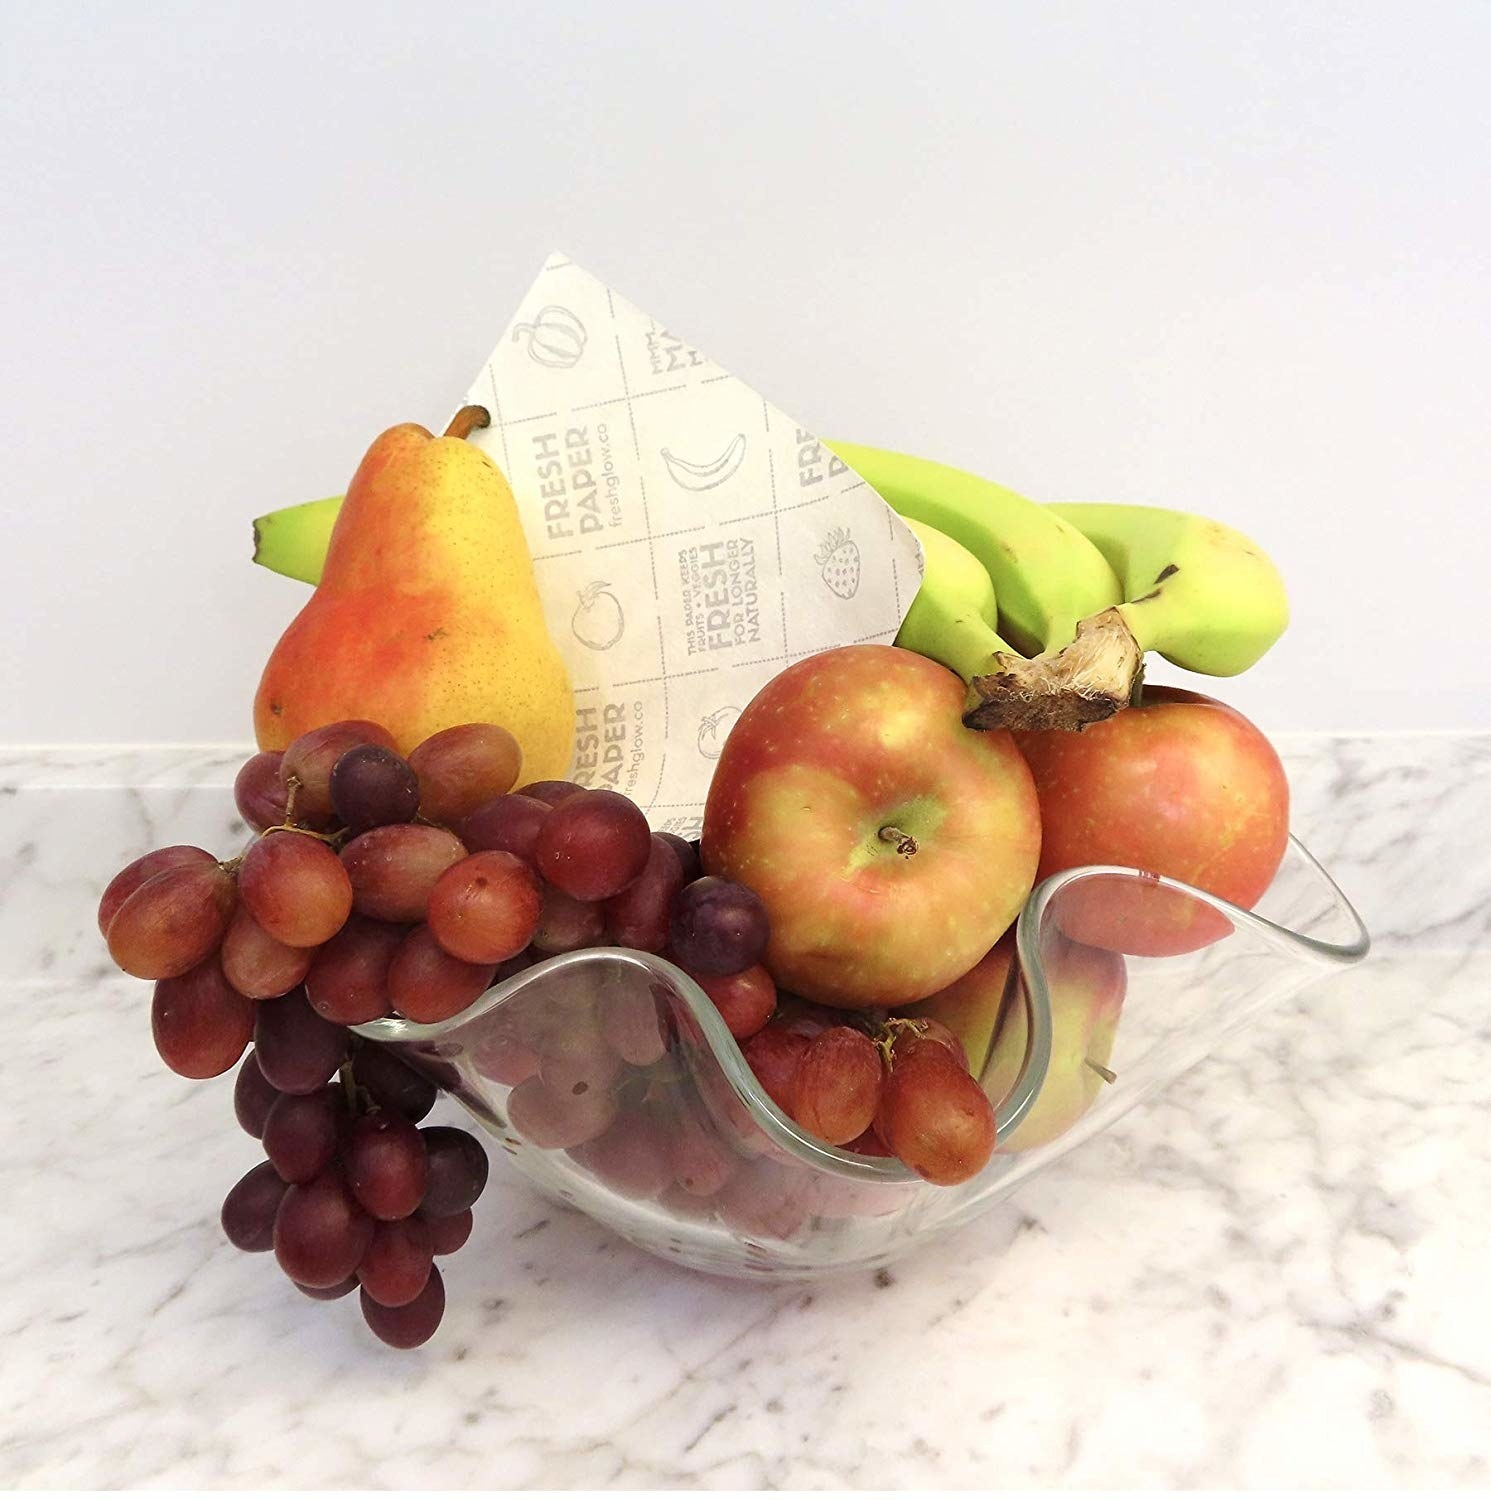 a glass bowl containing various fruits and a fenugreek-infused sheet